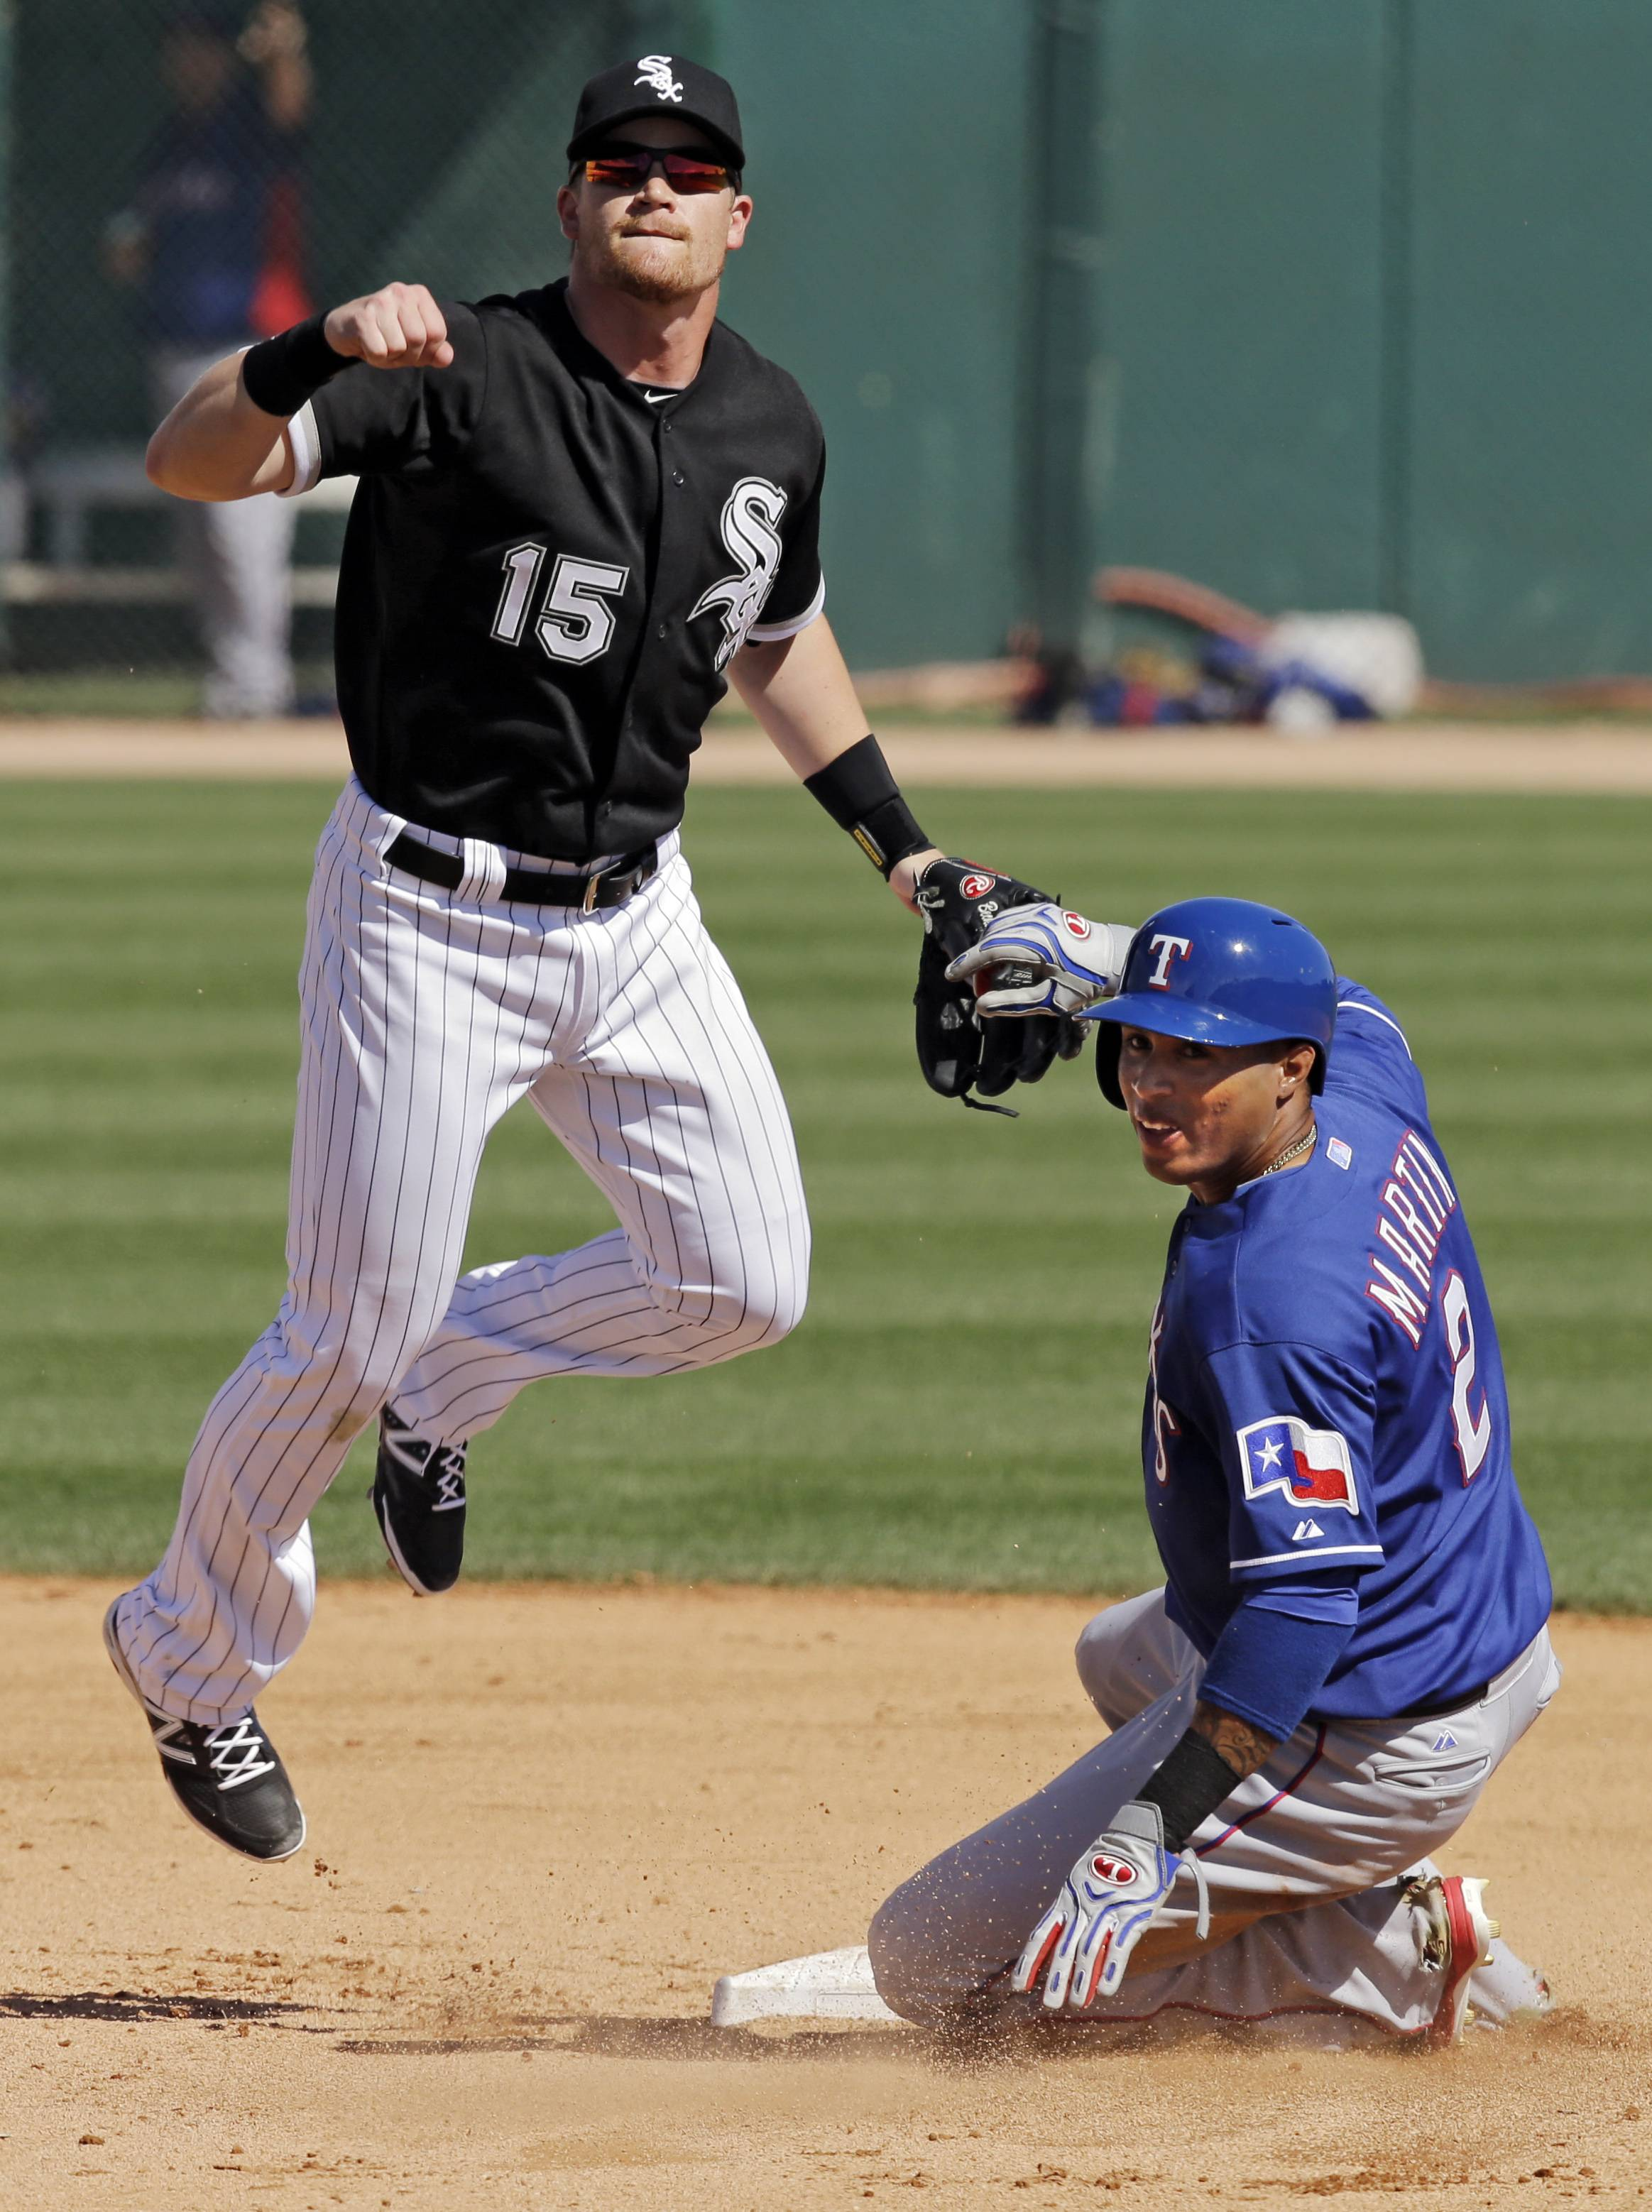 Chicago White Sox second baseman Gordon Beckham (15) watches his throw to first after forcing out Texas Rangers' Leonys Martin to start a double play in the fifth inning of a spring exhibition baseball game Tuesday, March 11, 2014, in Glendale, Ariz.